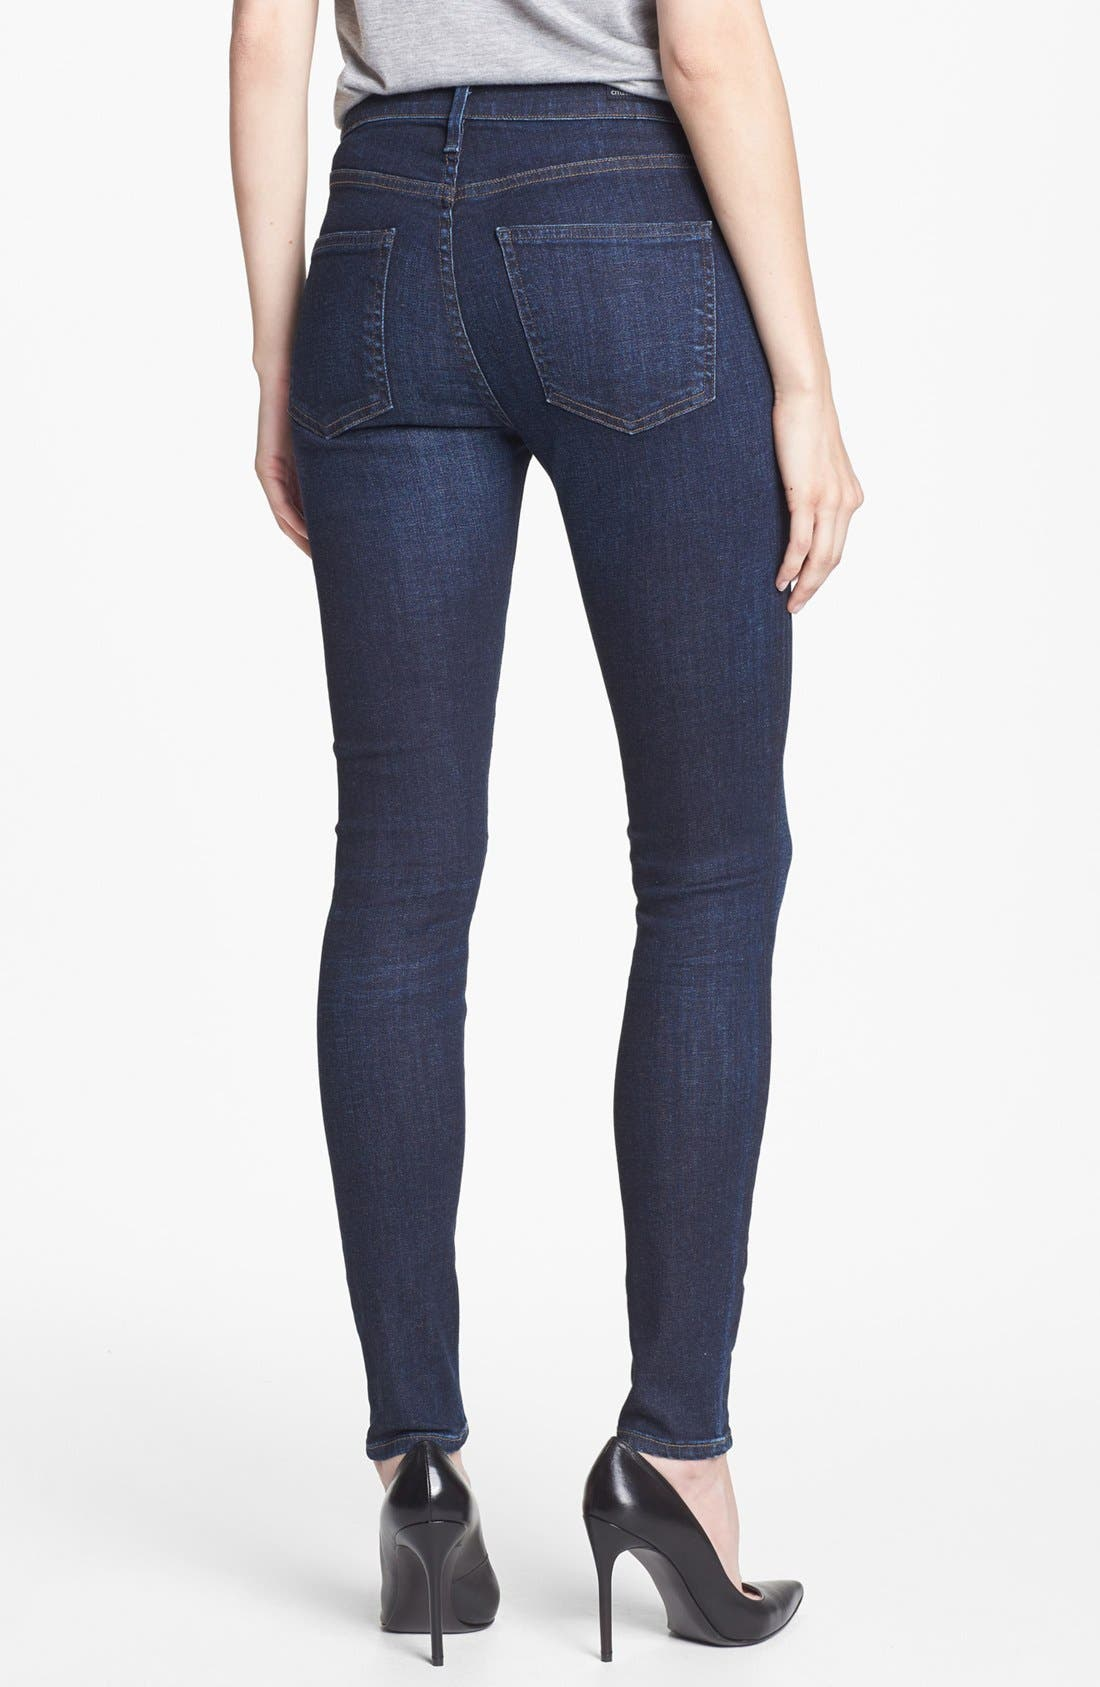 'Rocket' High Rise Skinny Jeans,                             Alternate thumbnail 3, color,                             420